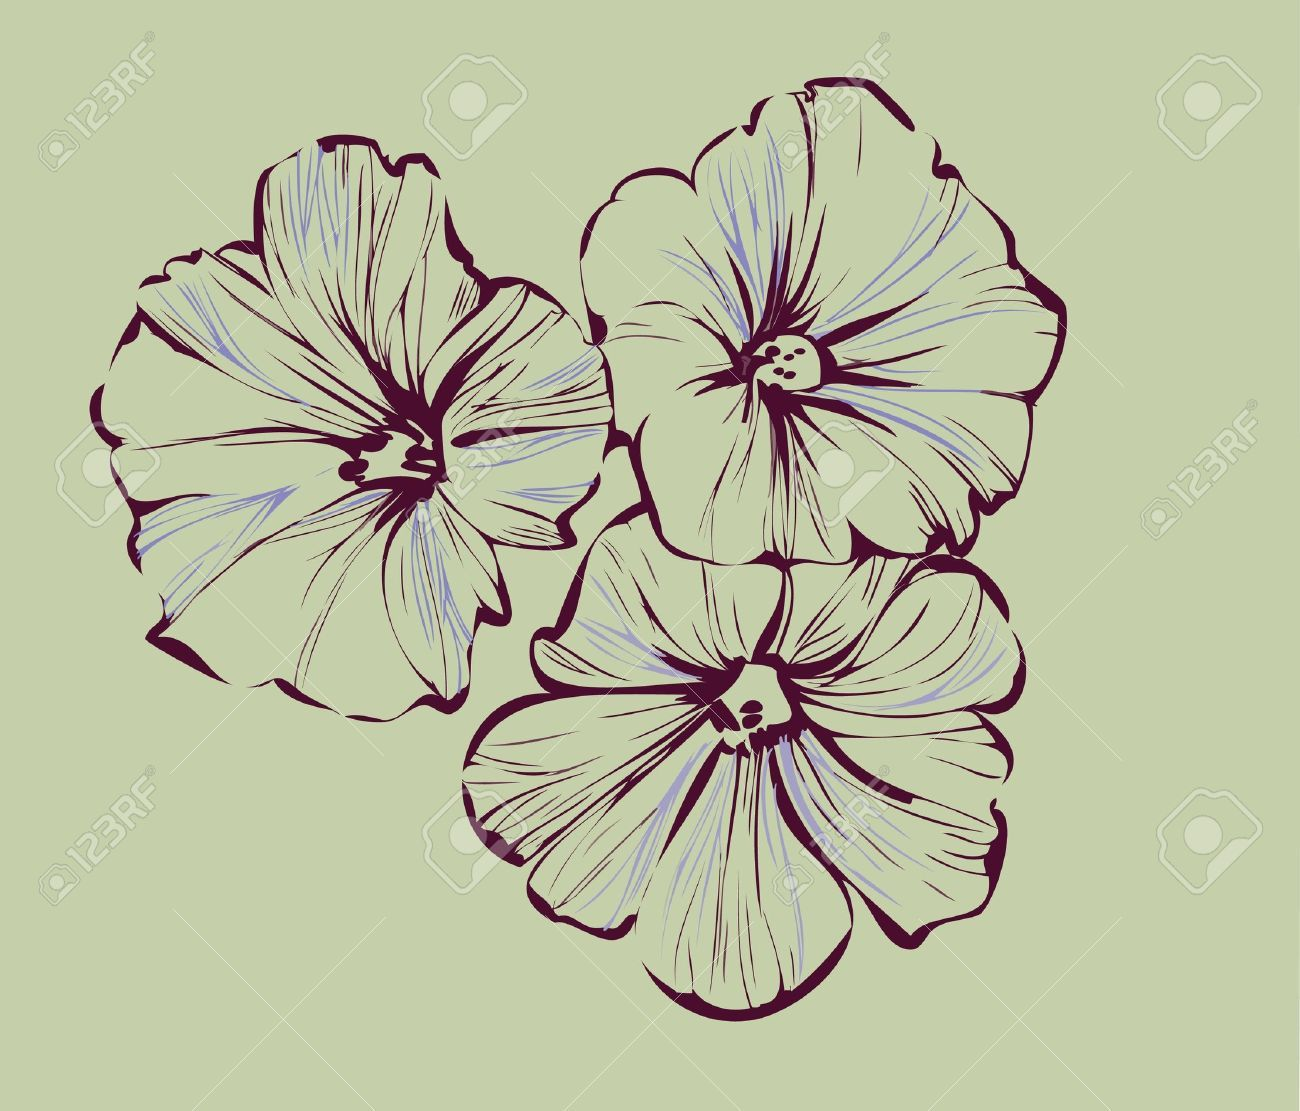 Morning Glory Stock Vector Illustration And Royalty Free Morning More With Images Morning Glory Tattoo Aster Flower Tattoos Birth Flower Tattoos